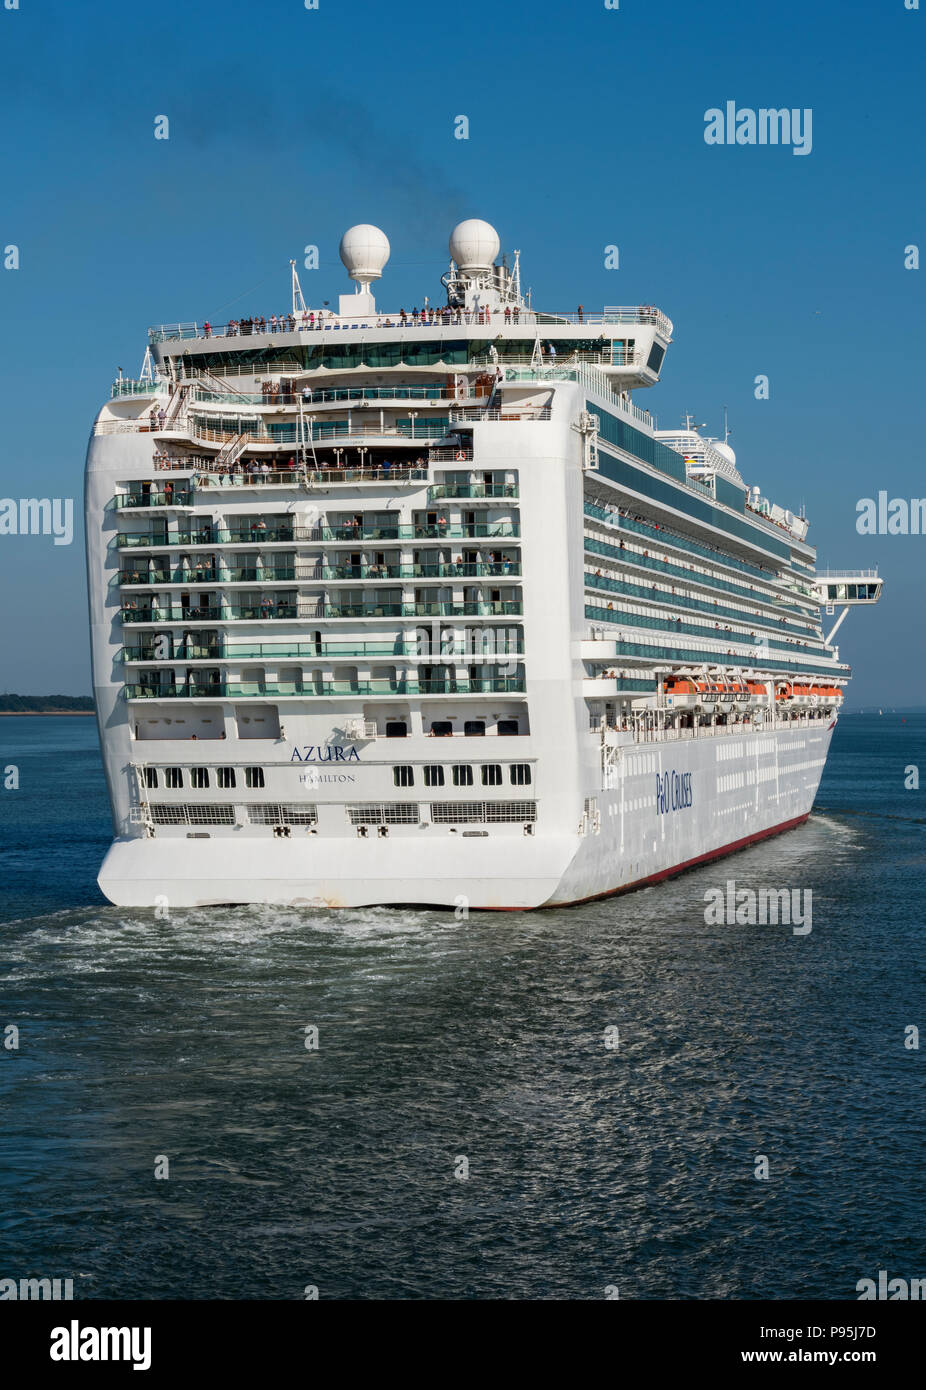 the p and o cruise ocean liner azura at the port of Southampton, England, uk. - Stock Image